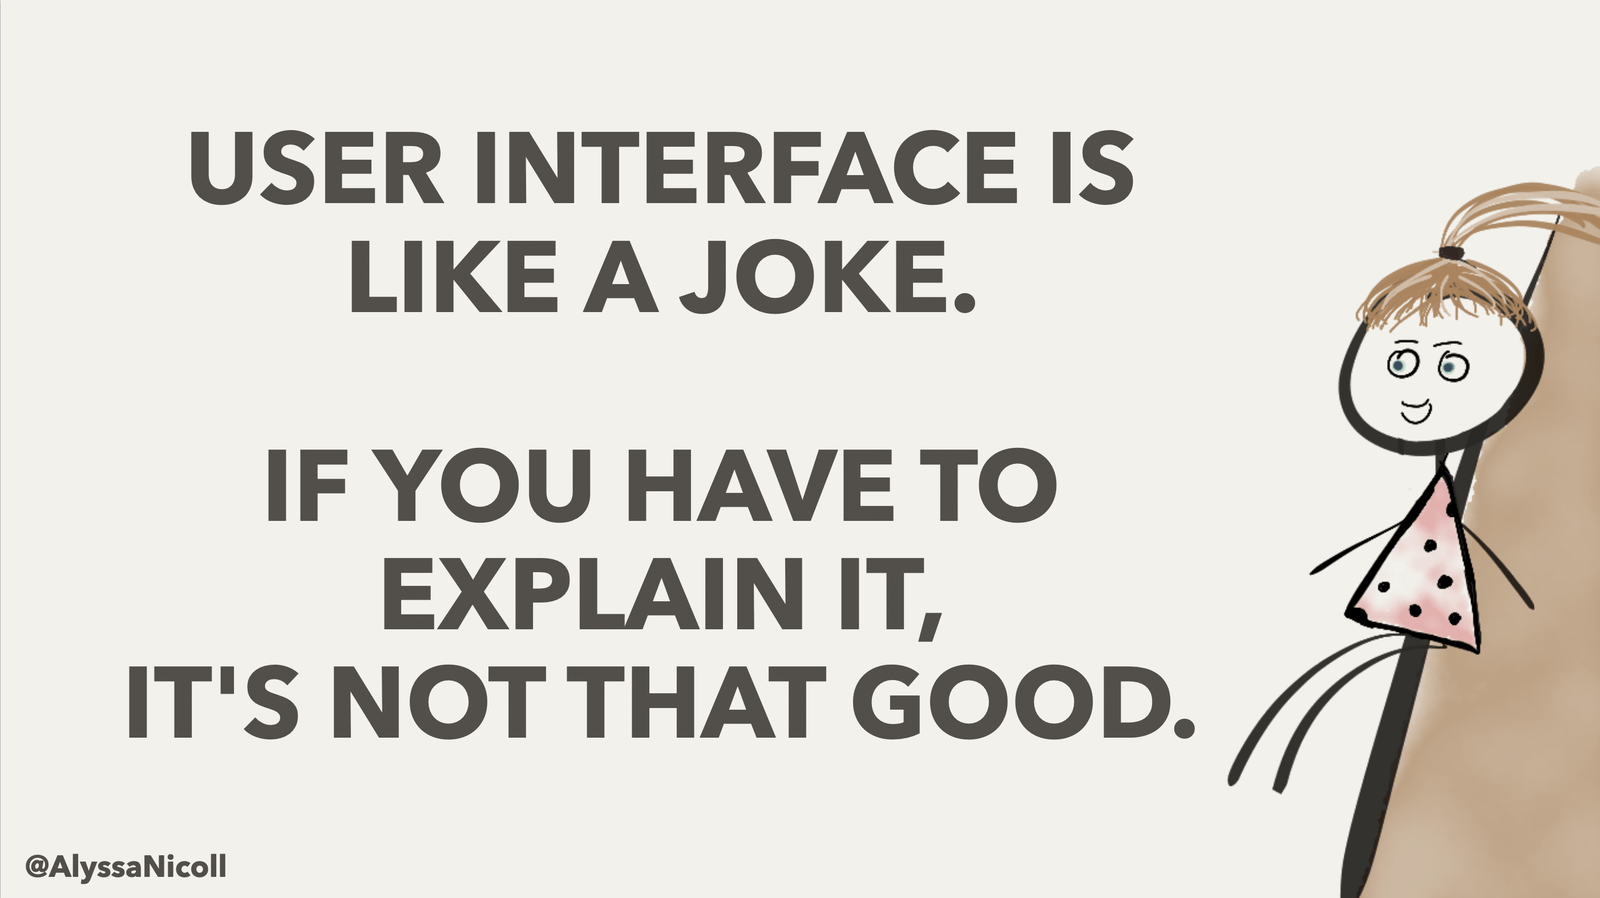 User interface is like a joke. If you have to explain it, it's no good.